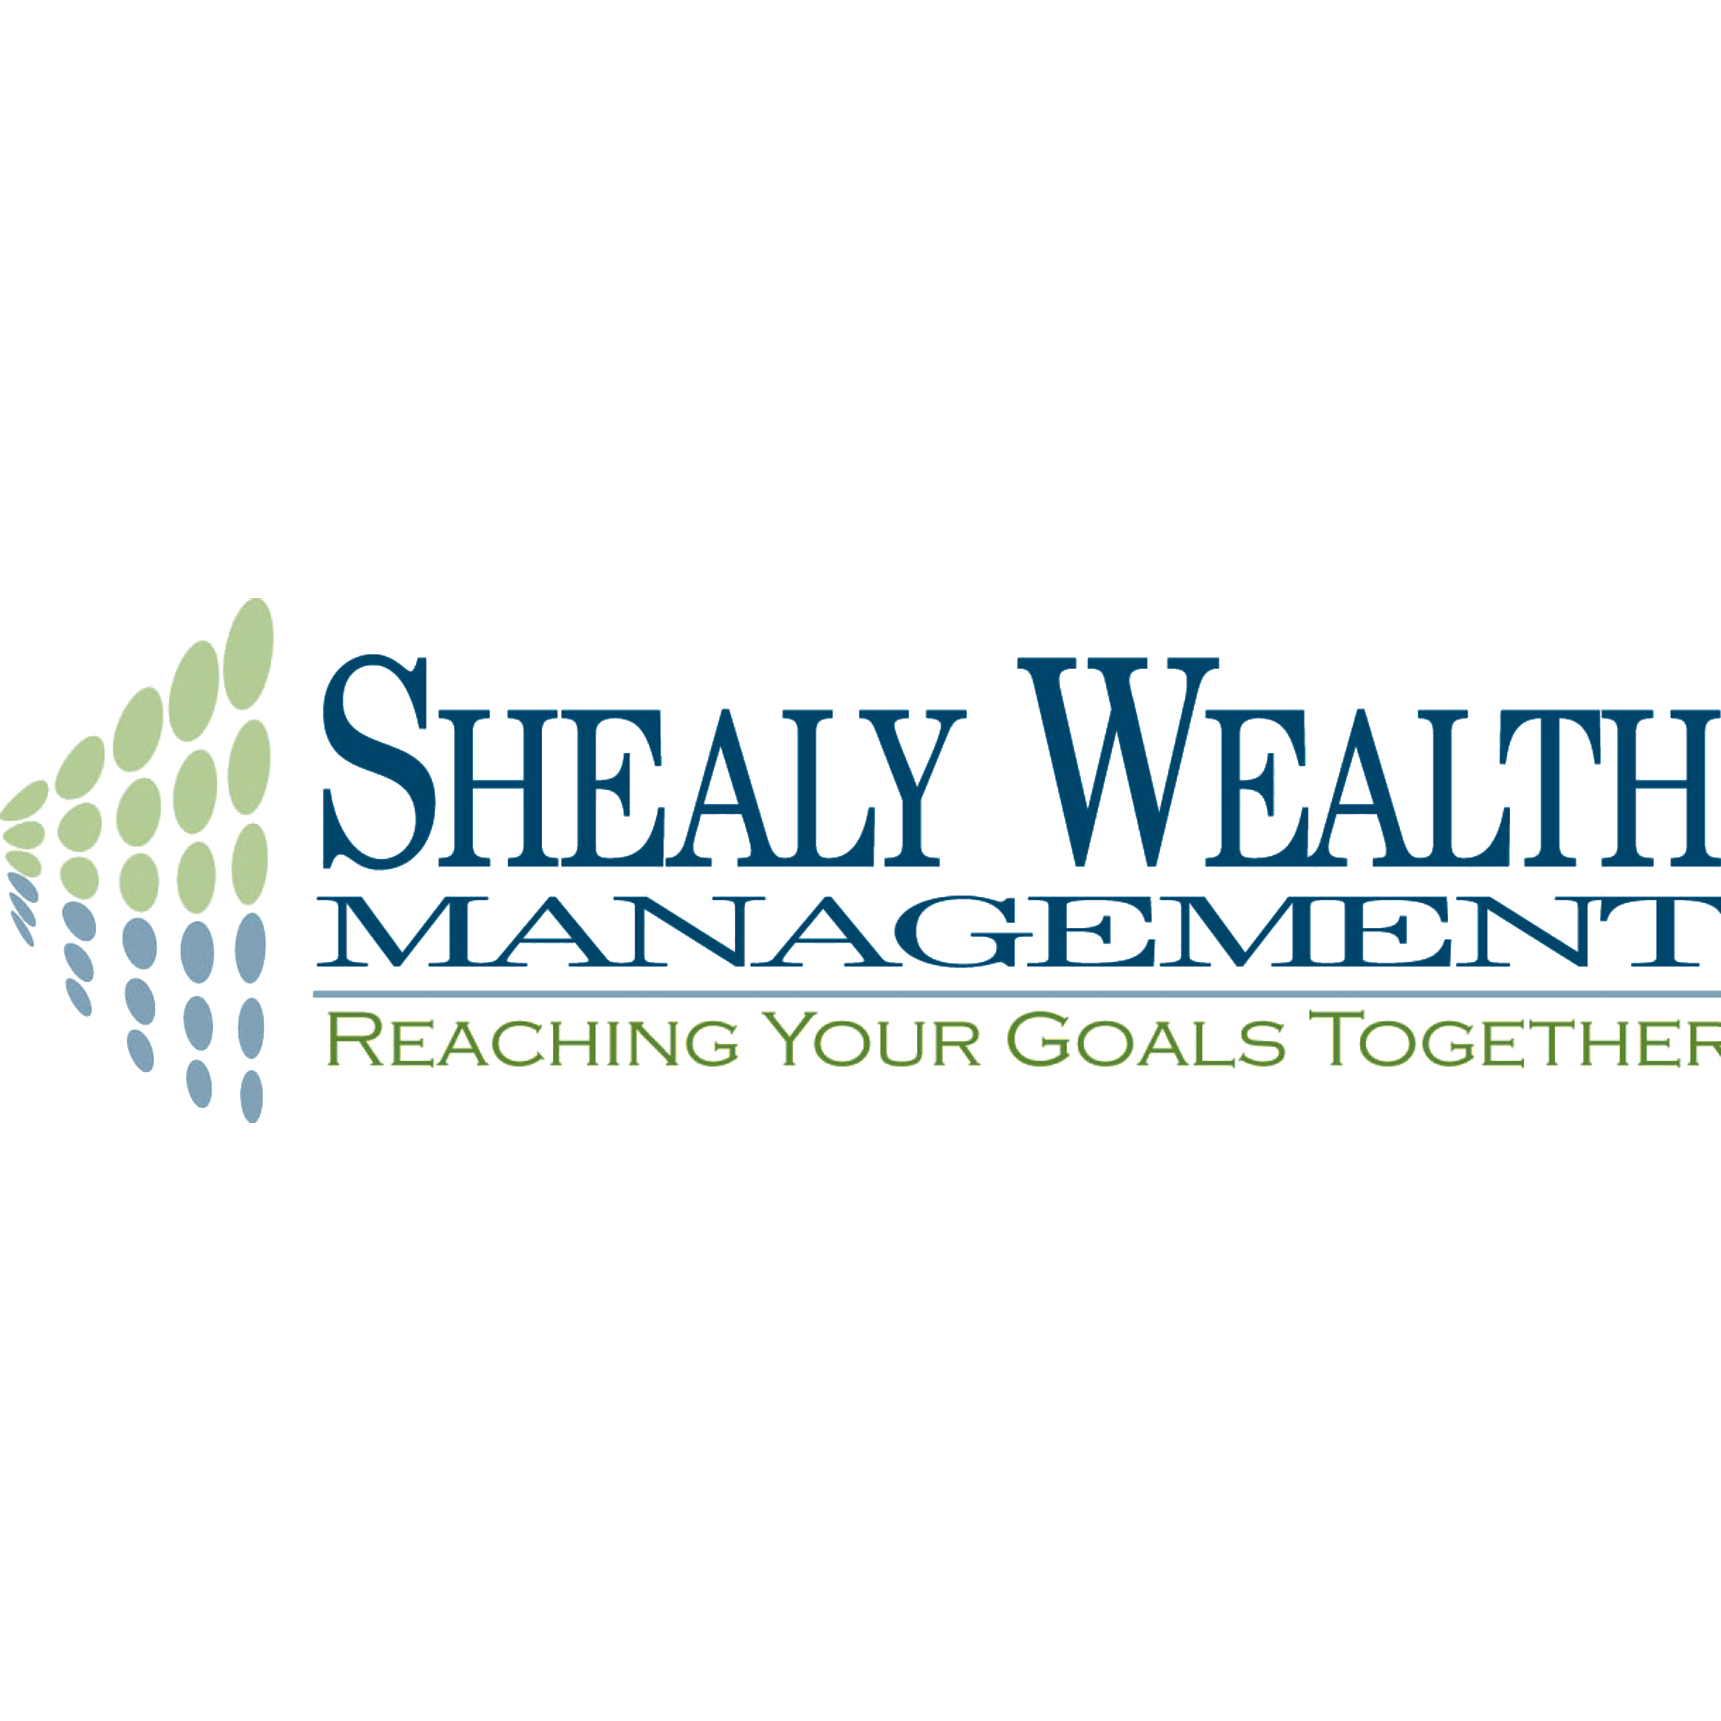 Shealy Wealth Management image 2